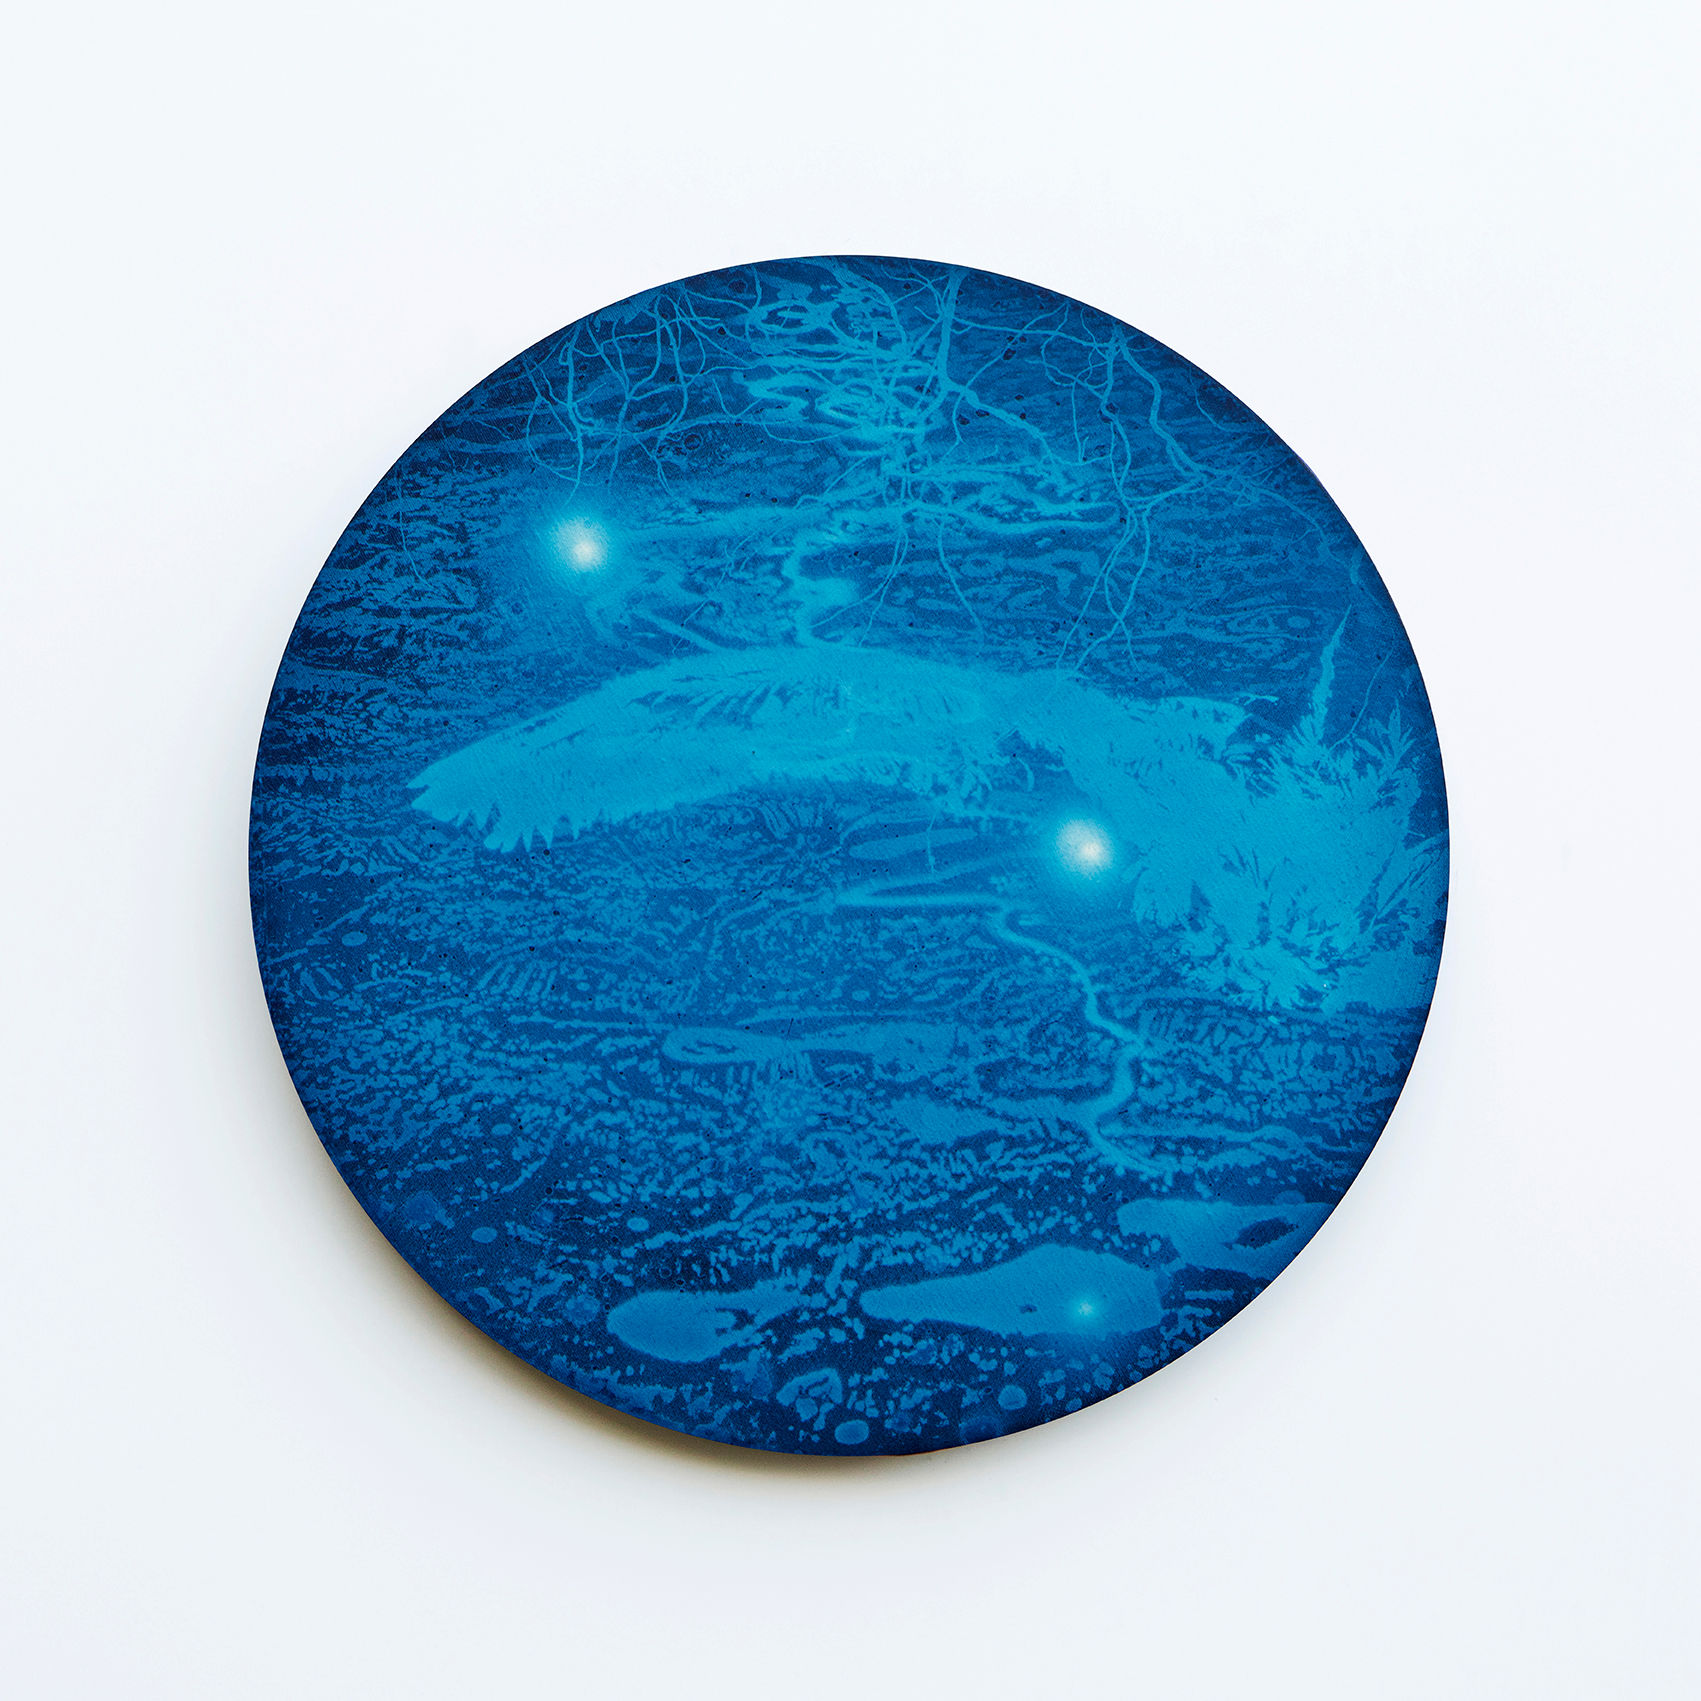 WATERSCAPE_내 안의 바깥 34, Diameter 40cm, Traditional pigment, water-print, water-drawing on canvas, 2018